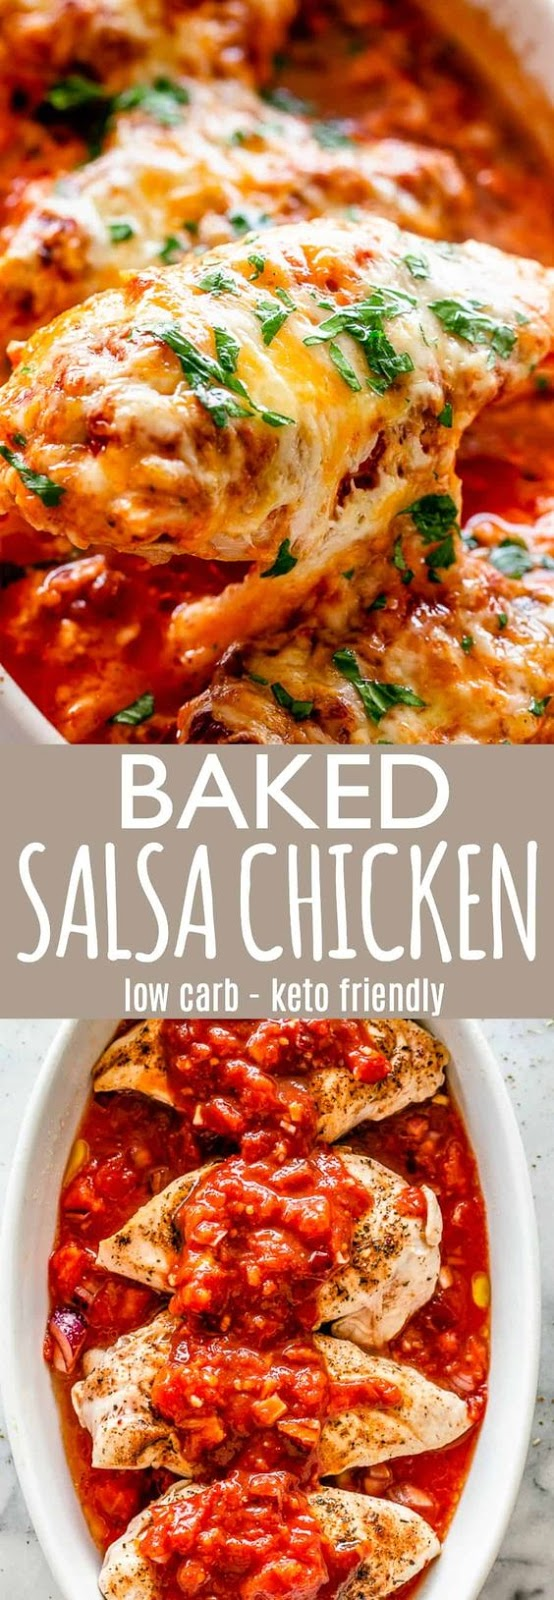 Baked Salsa Chicken